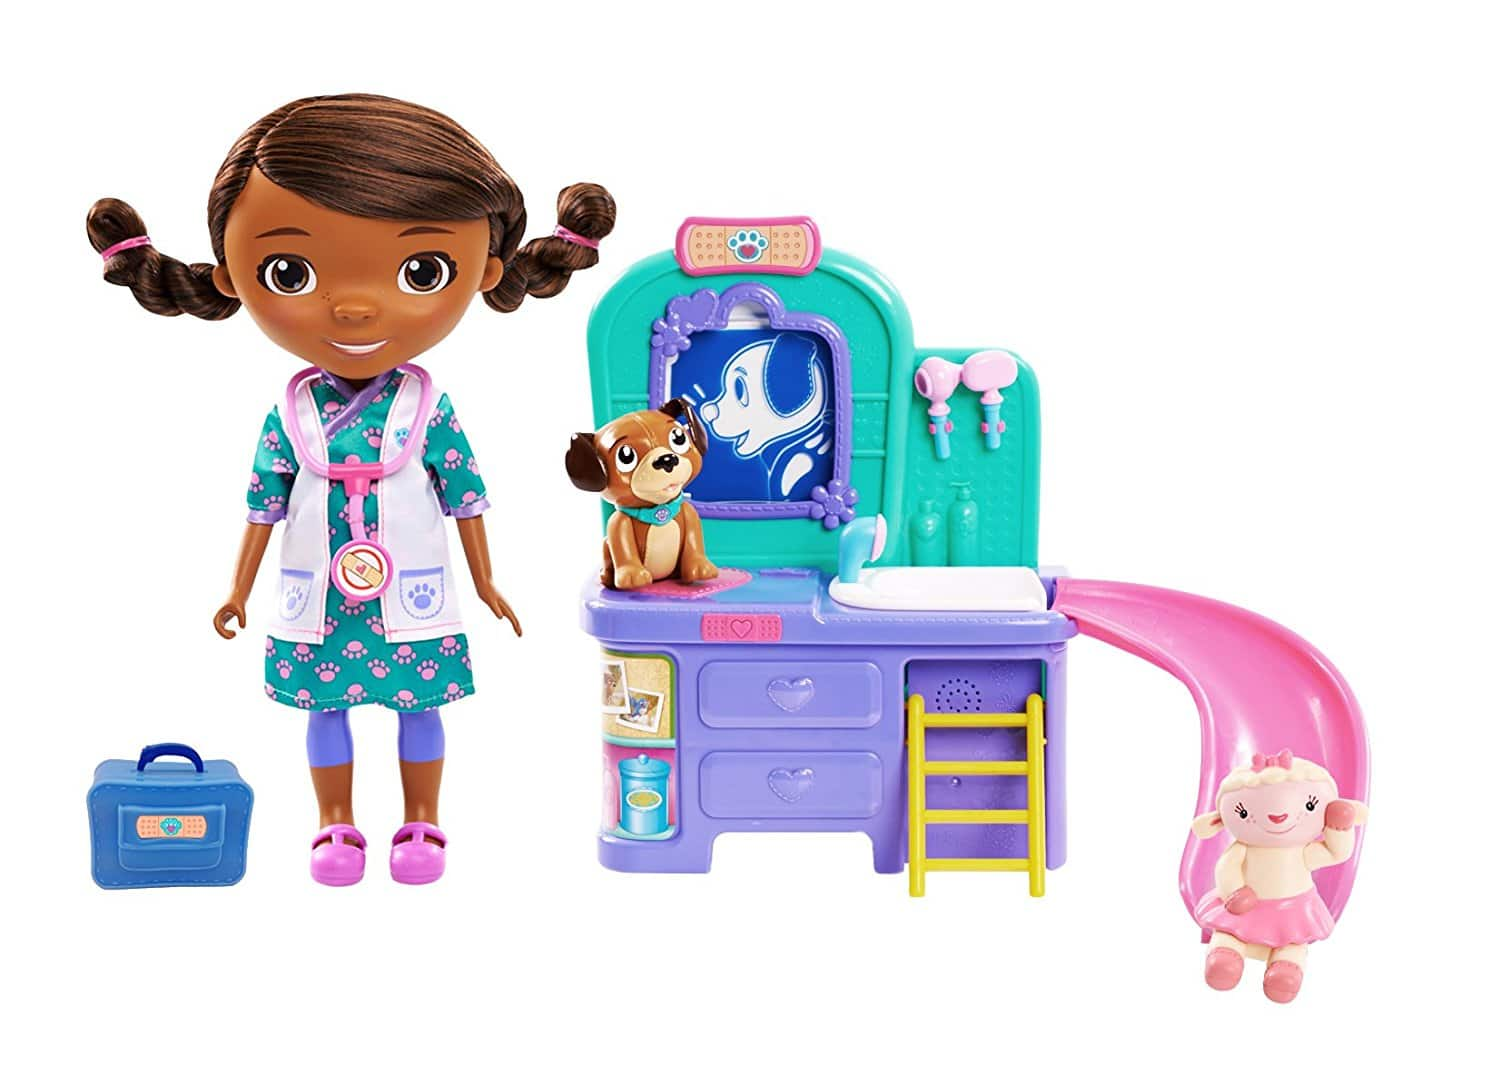 Doc McStuffins Pet Clinic Doll $12.47 Free Shipping with Prime